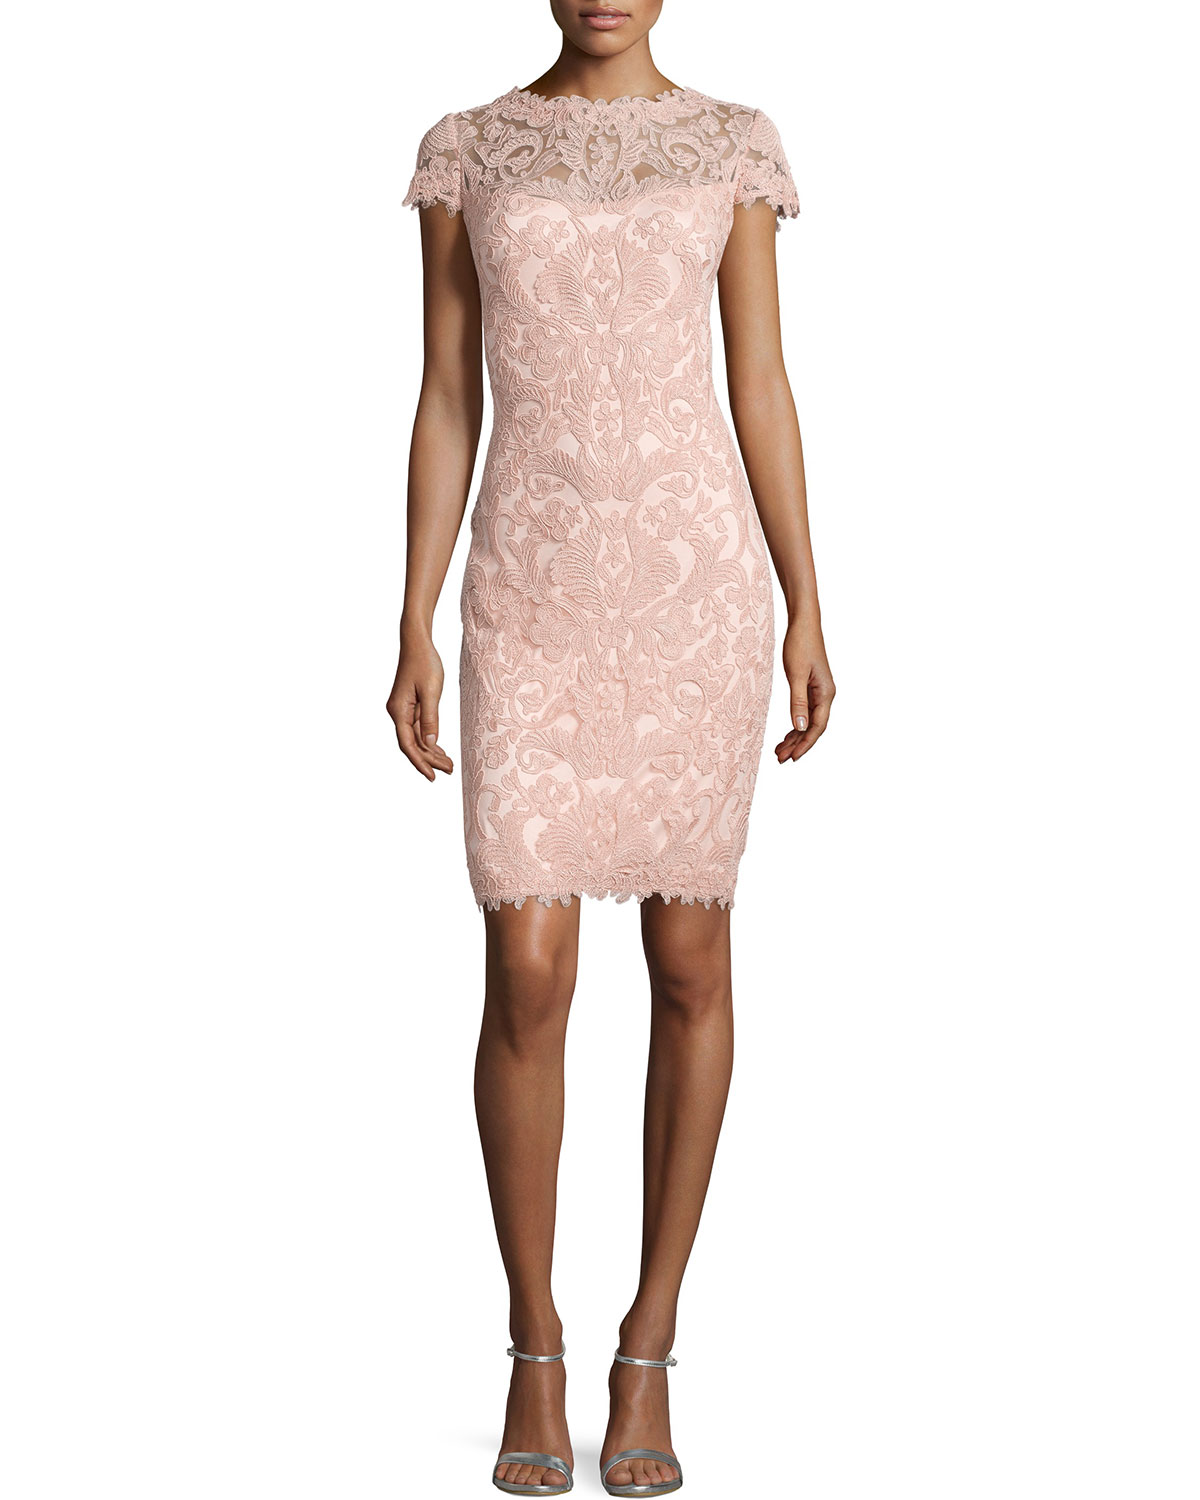 Lace Embroidered Sheath Dress Petal Bloom